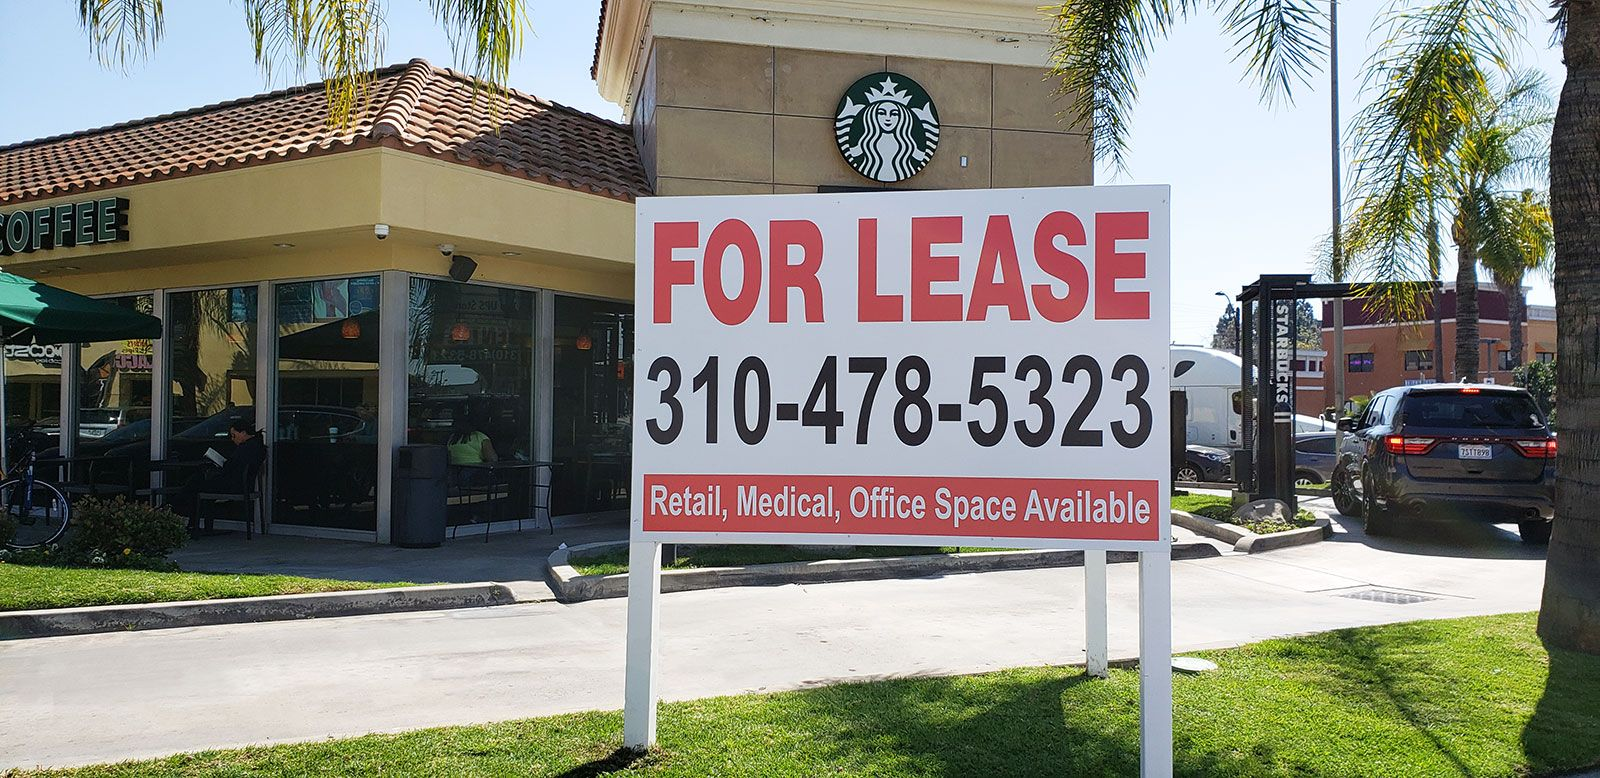 for lease yard sign